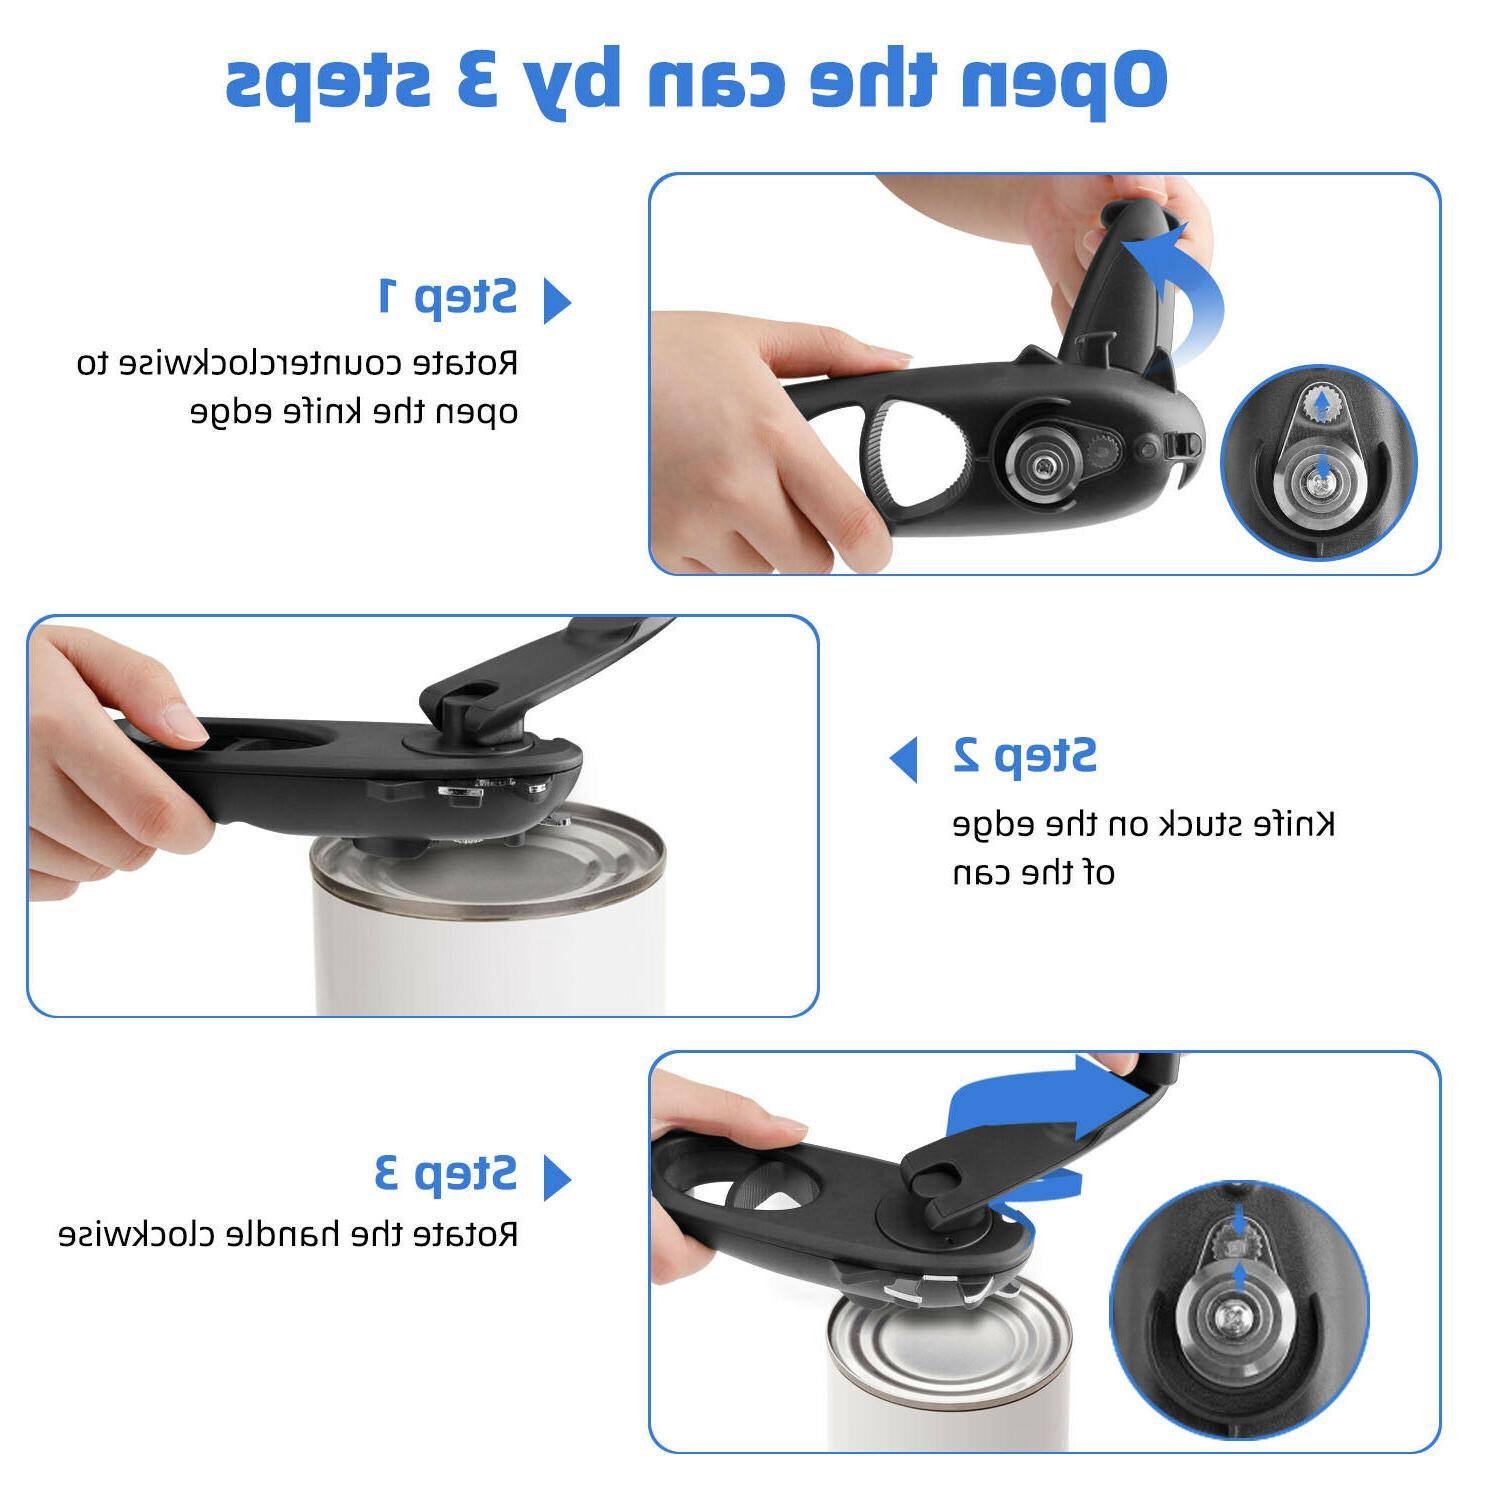 8in1 Can Safety Smooth Edge Tool